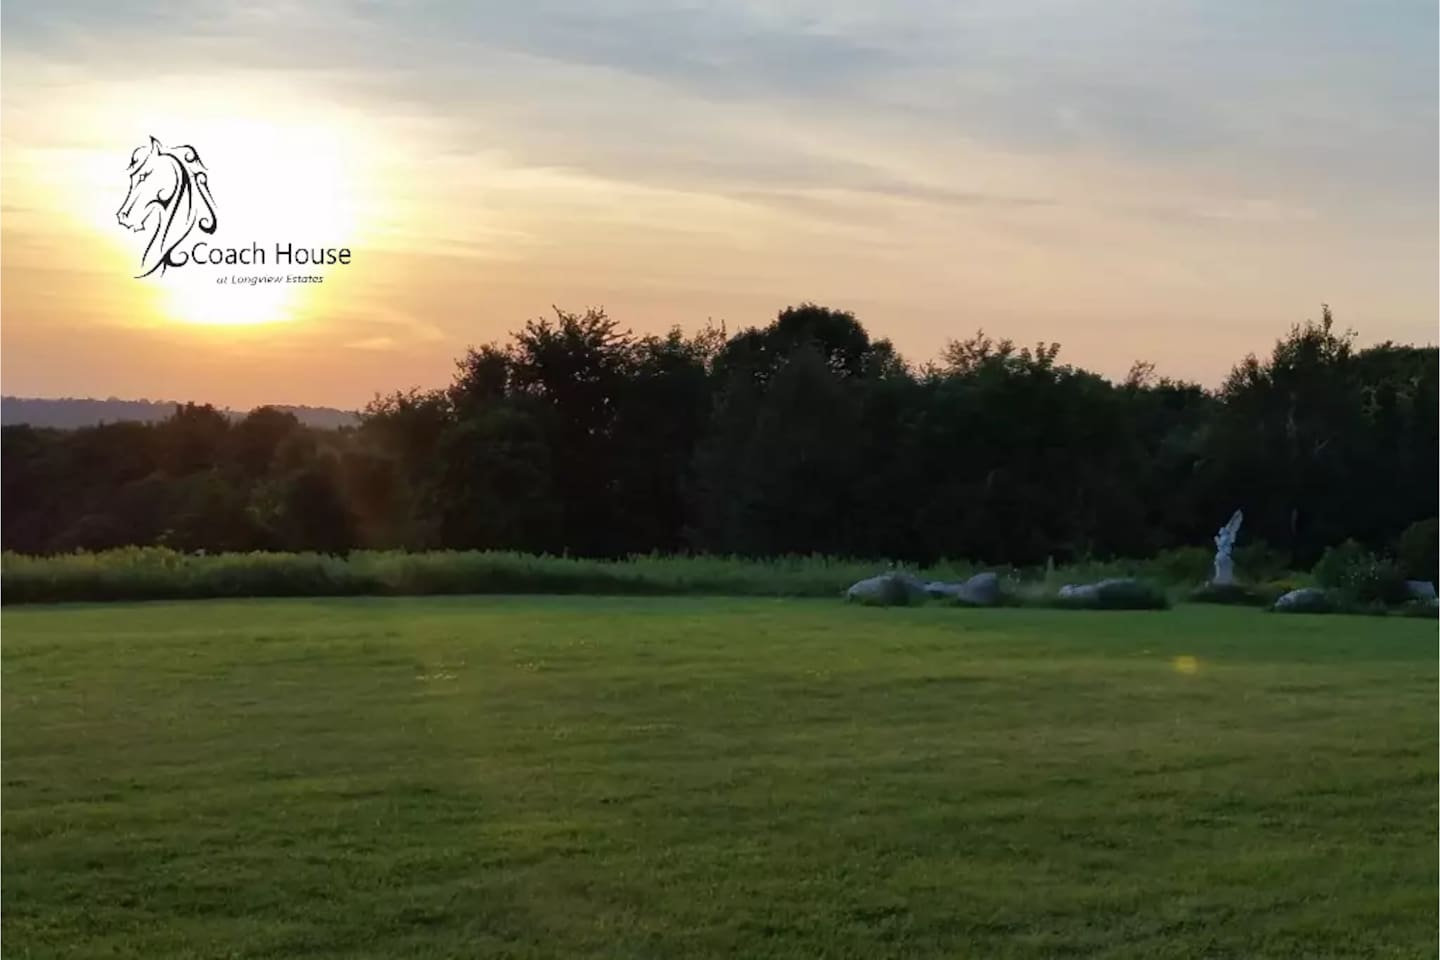 Welcome to the Coach House at Longview Estates. Your view  - beautiful sunsets